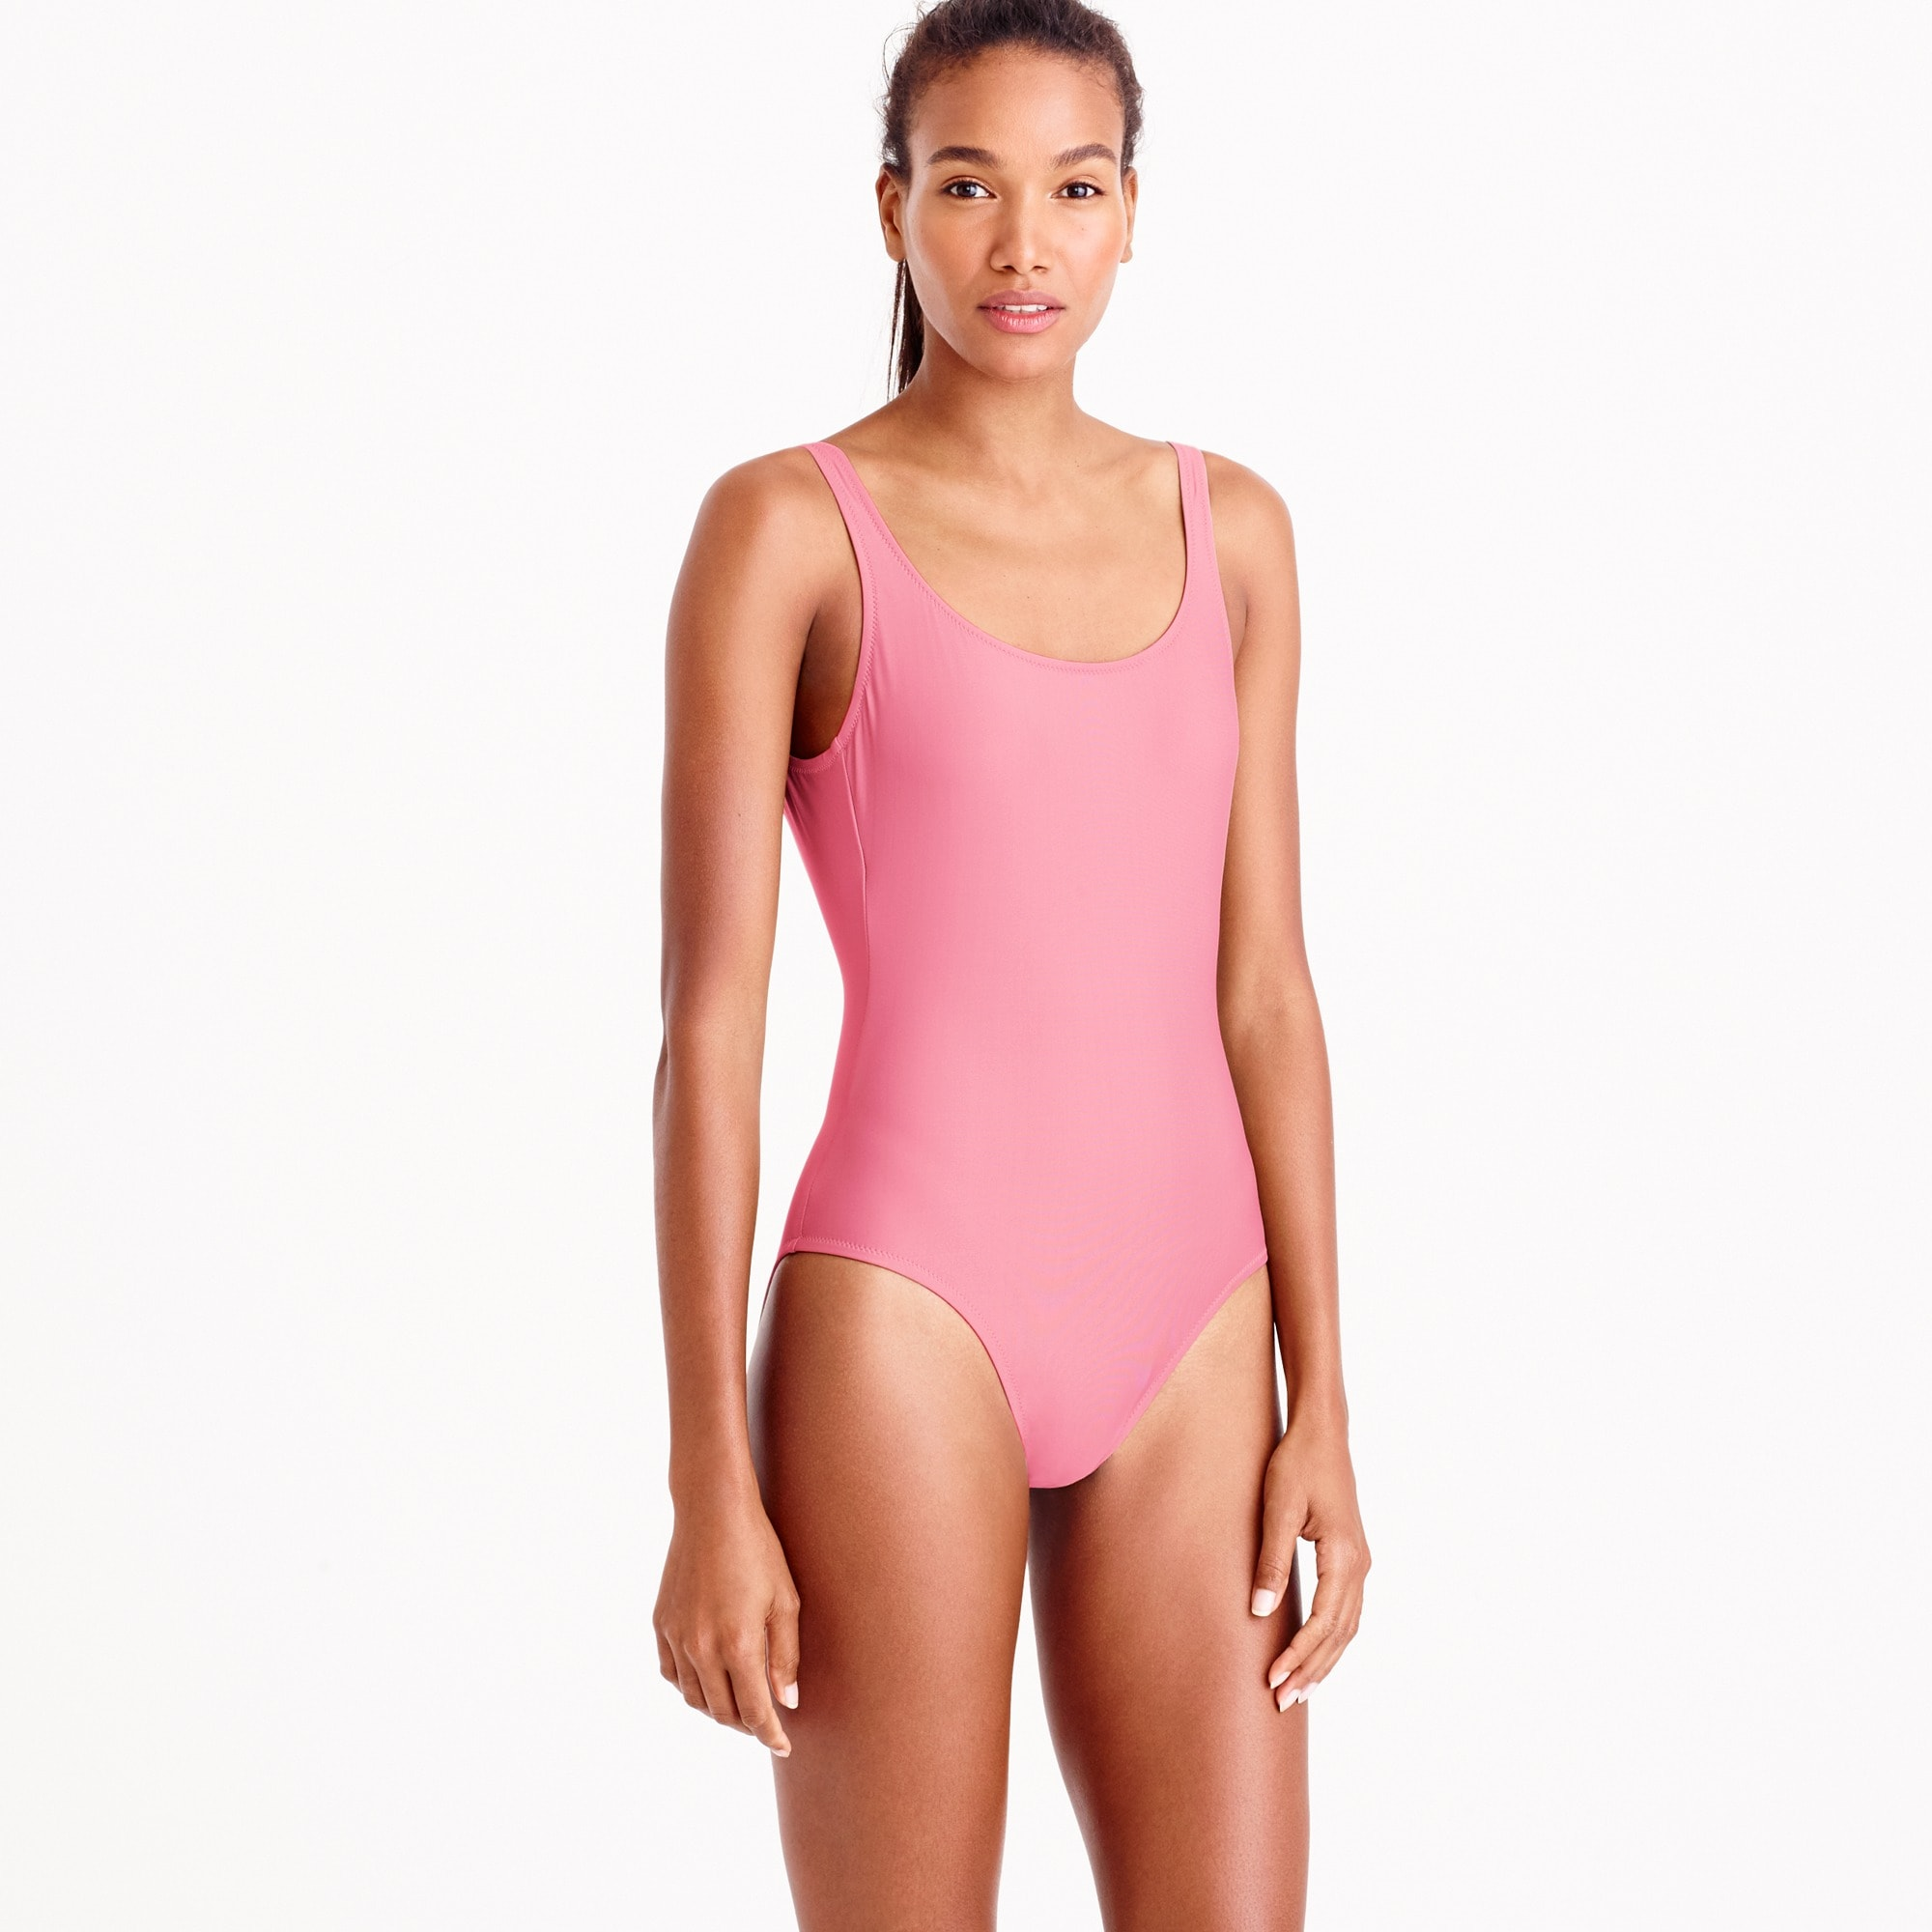 Scoopback one-piece swimsuit women new arrivals c